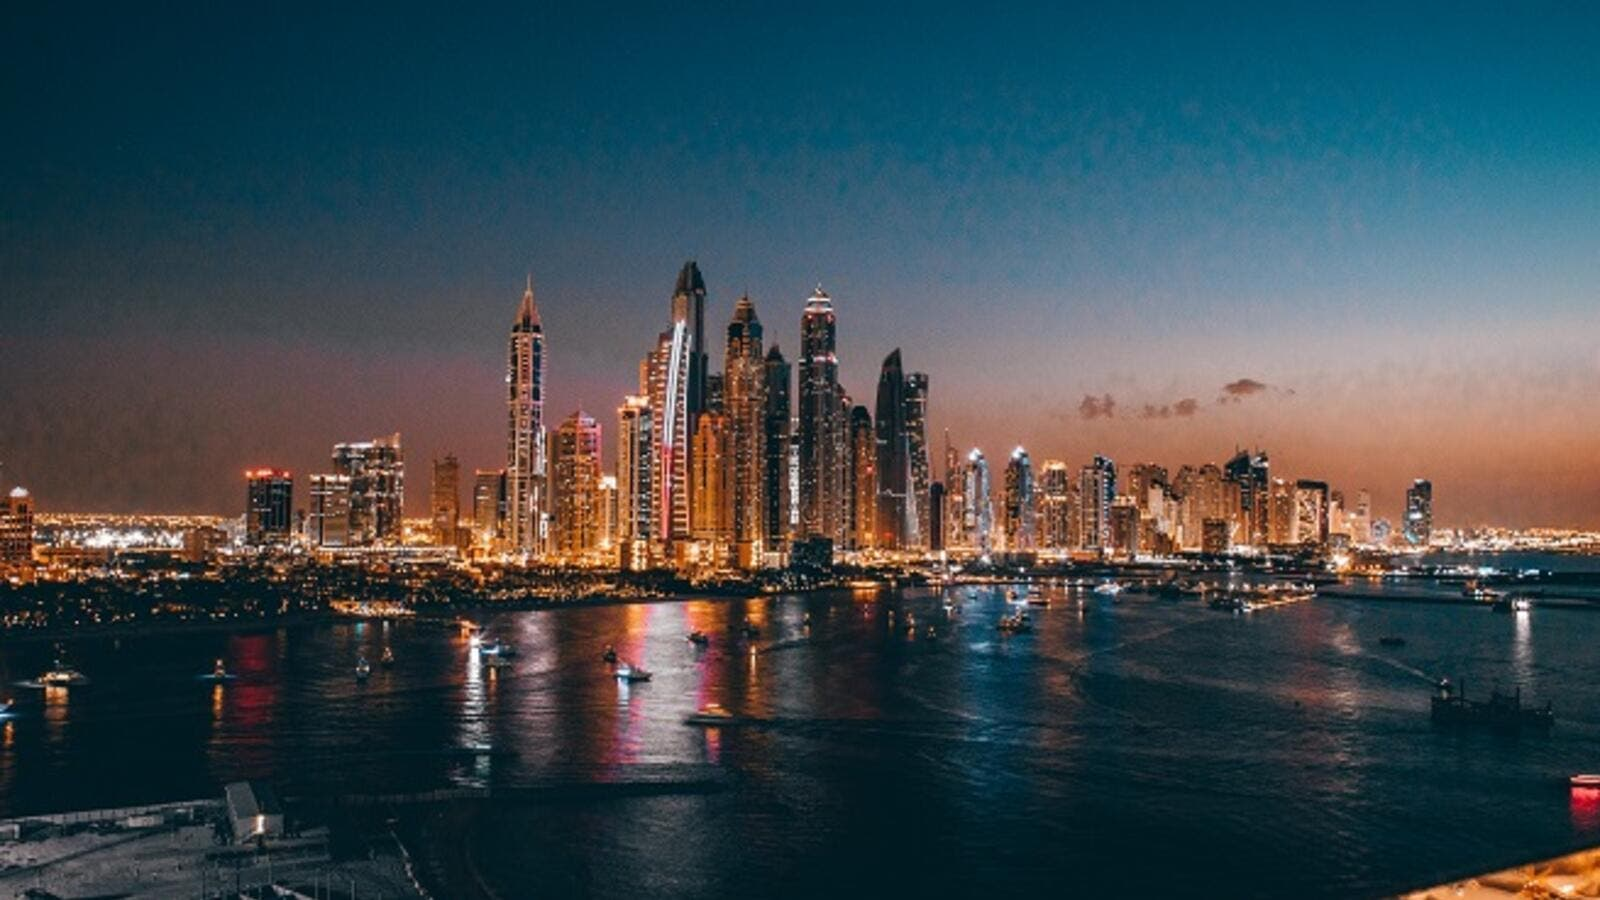 As more supply is expected to materialise in the coming year, residential vacancies are anticipated to increase further in Abu Dhabi. (Shutterstock)